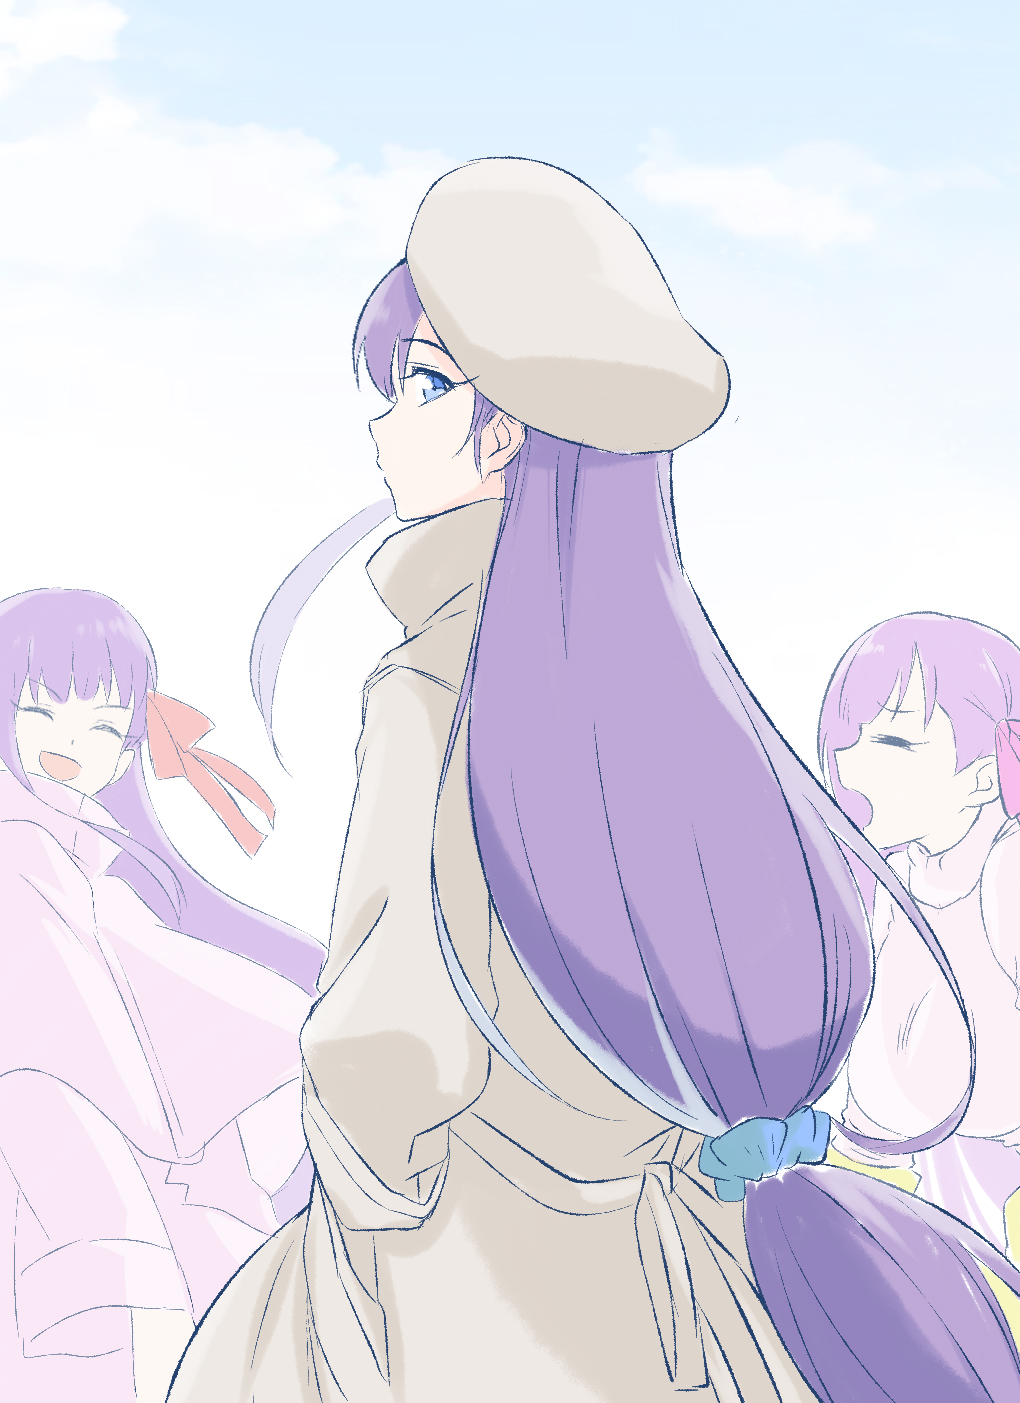 3girls bangs bb_(fate) bb_(fate)_(all) beige_coat beret blue_eyes blue_sky blush breasts closed_eyes coat coffeekite fate/extra fate/extra_ccc fate_(series) hair_ribbon hat highres large_breasts long_hair looking_at_viewer looking_back meltryllis_(fate) multiple_girls open_mouth passionlip_(fate) pink_coat pink_ribbon ponytail purple_hair red_ribbon ribbon sky small_breasts smile sweater very_long_hair white_sweater